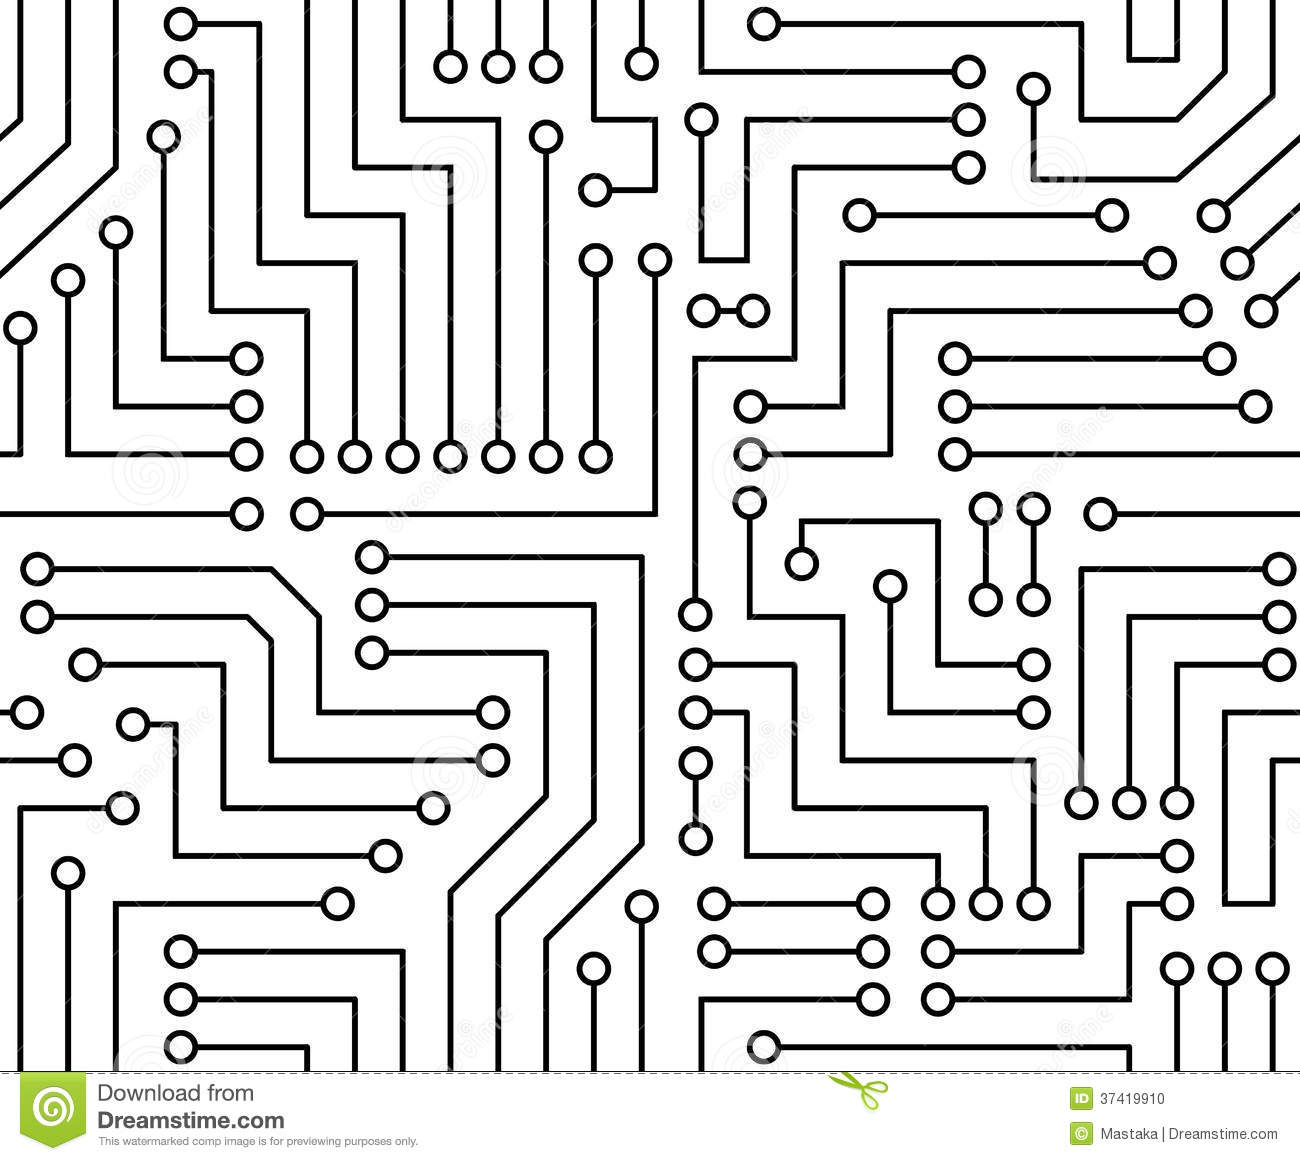 SN0w 10211 together with Index also Stock Photo Black White Printed Circuit Board Seamless Background Pattern Swatches Image37419910 furthermore Figures furthermore Stereo Pre lifier Tone Control Bass Treble Balance Loudness Volume. on pcb printed circuit board